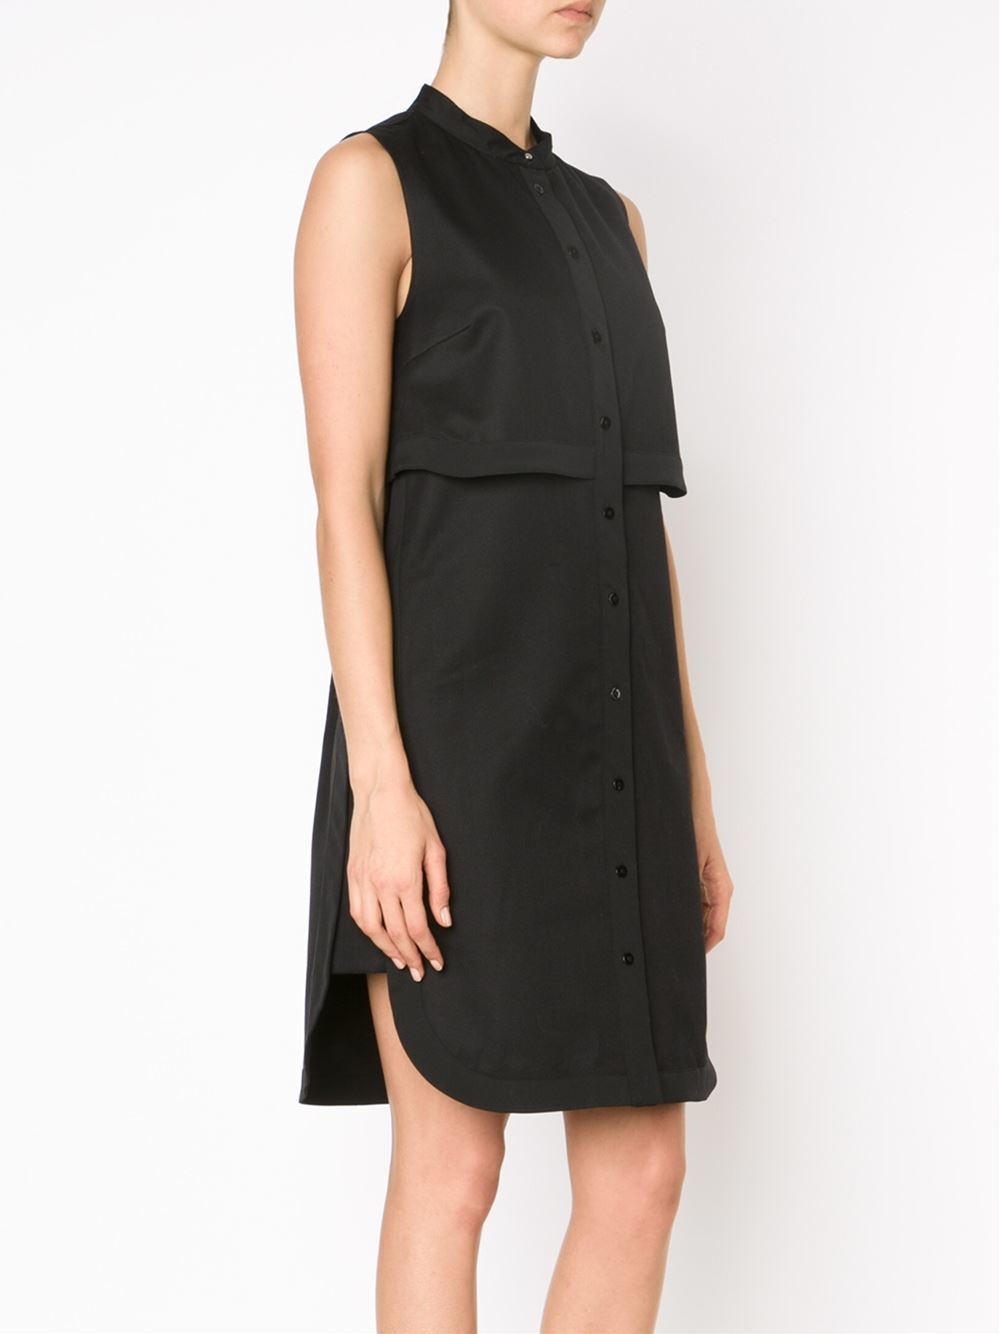 Proenza schouler Sleeveless Shirt Dress in Black | Lyst